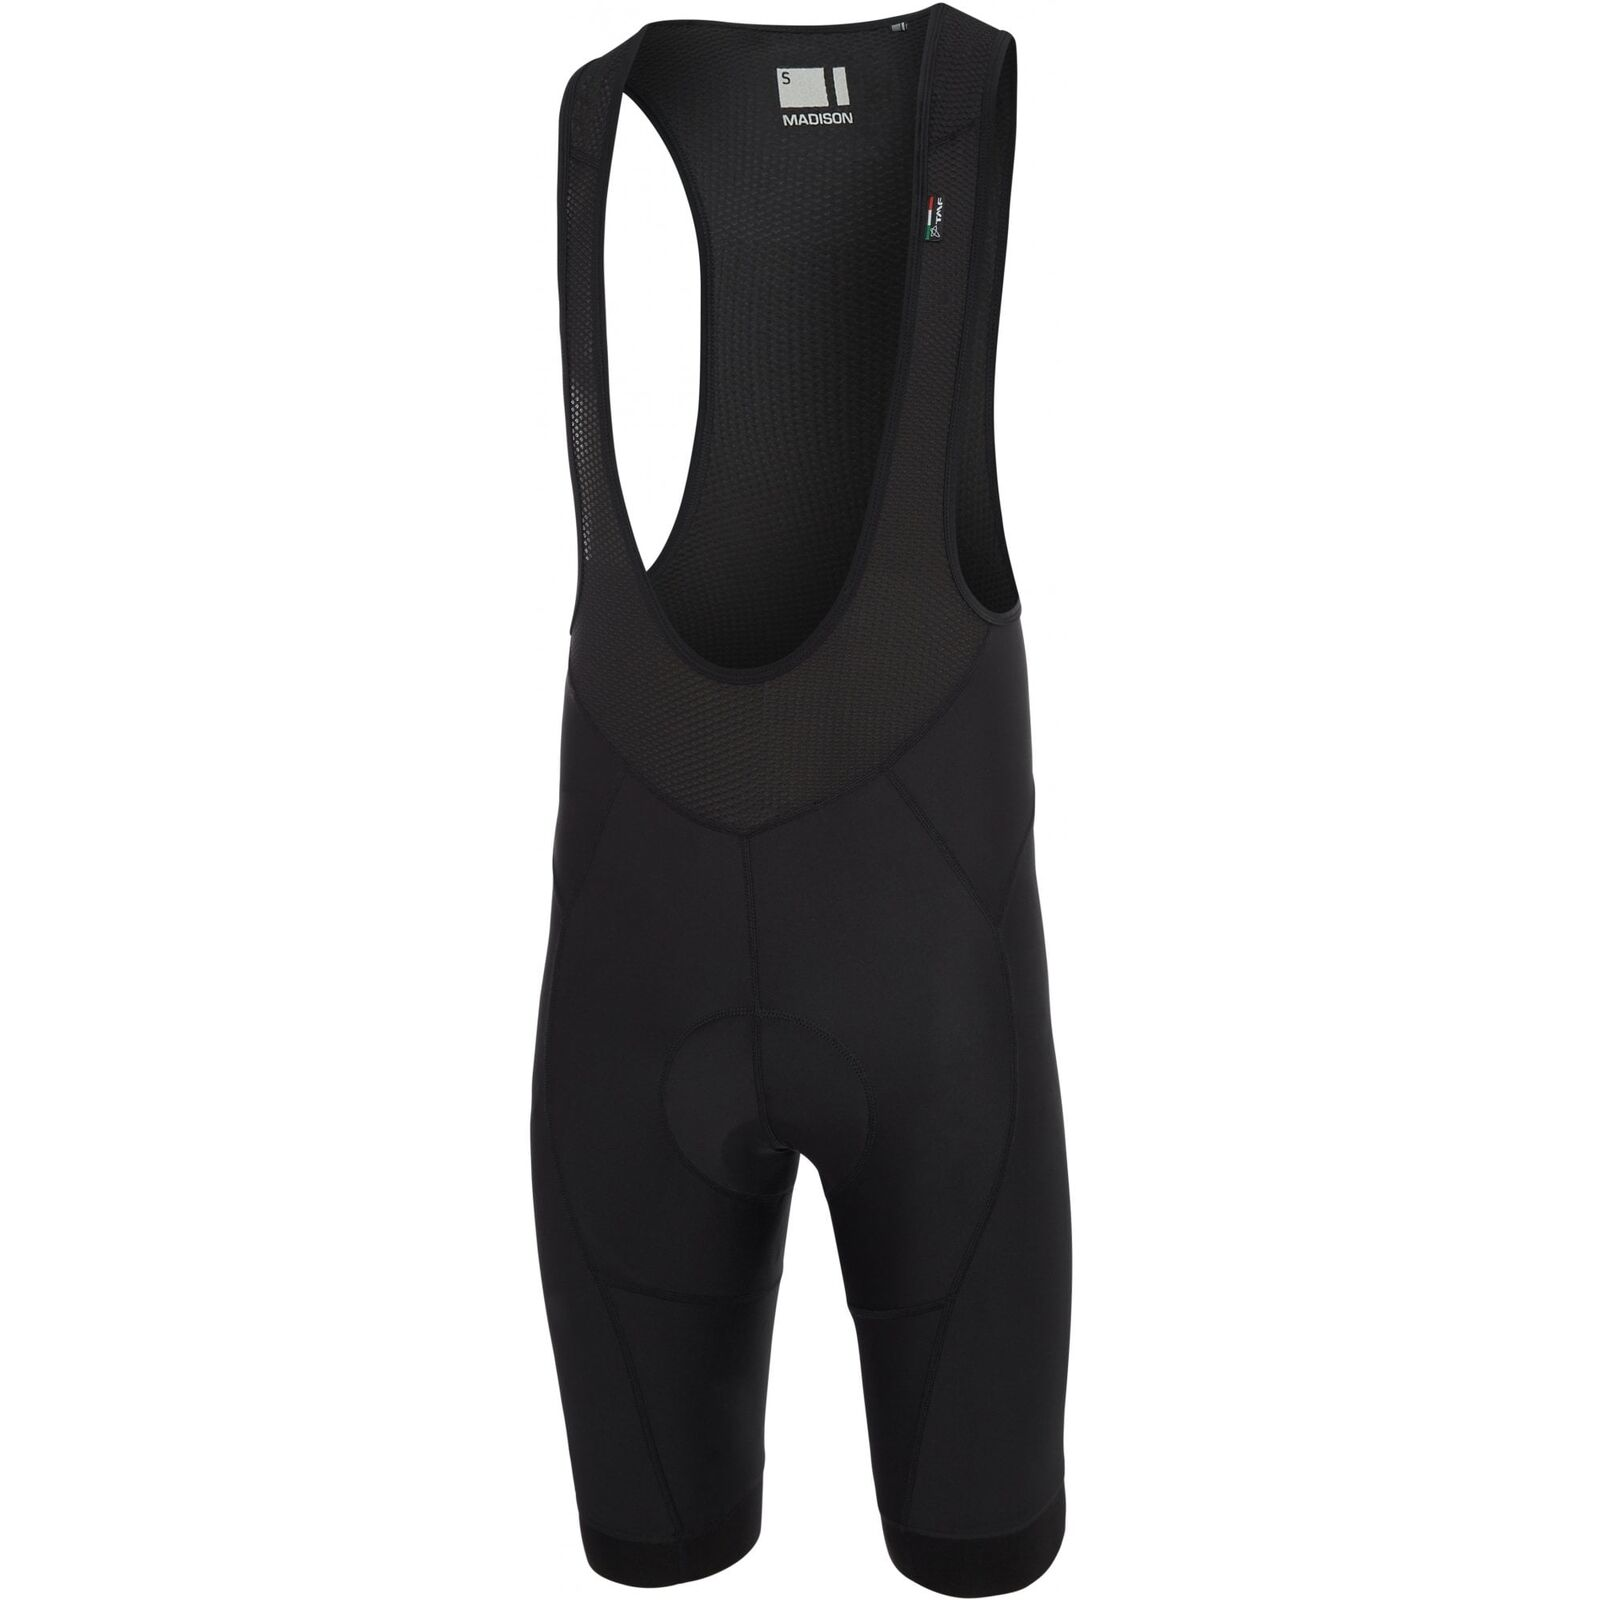 Madison Turbo Men's Cycling Bib Shorts